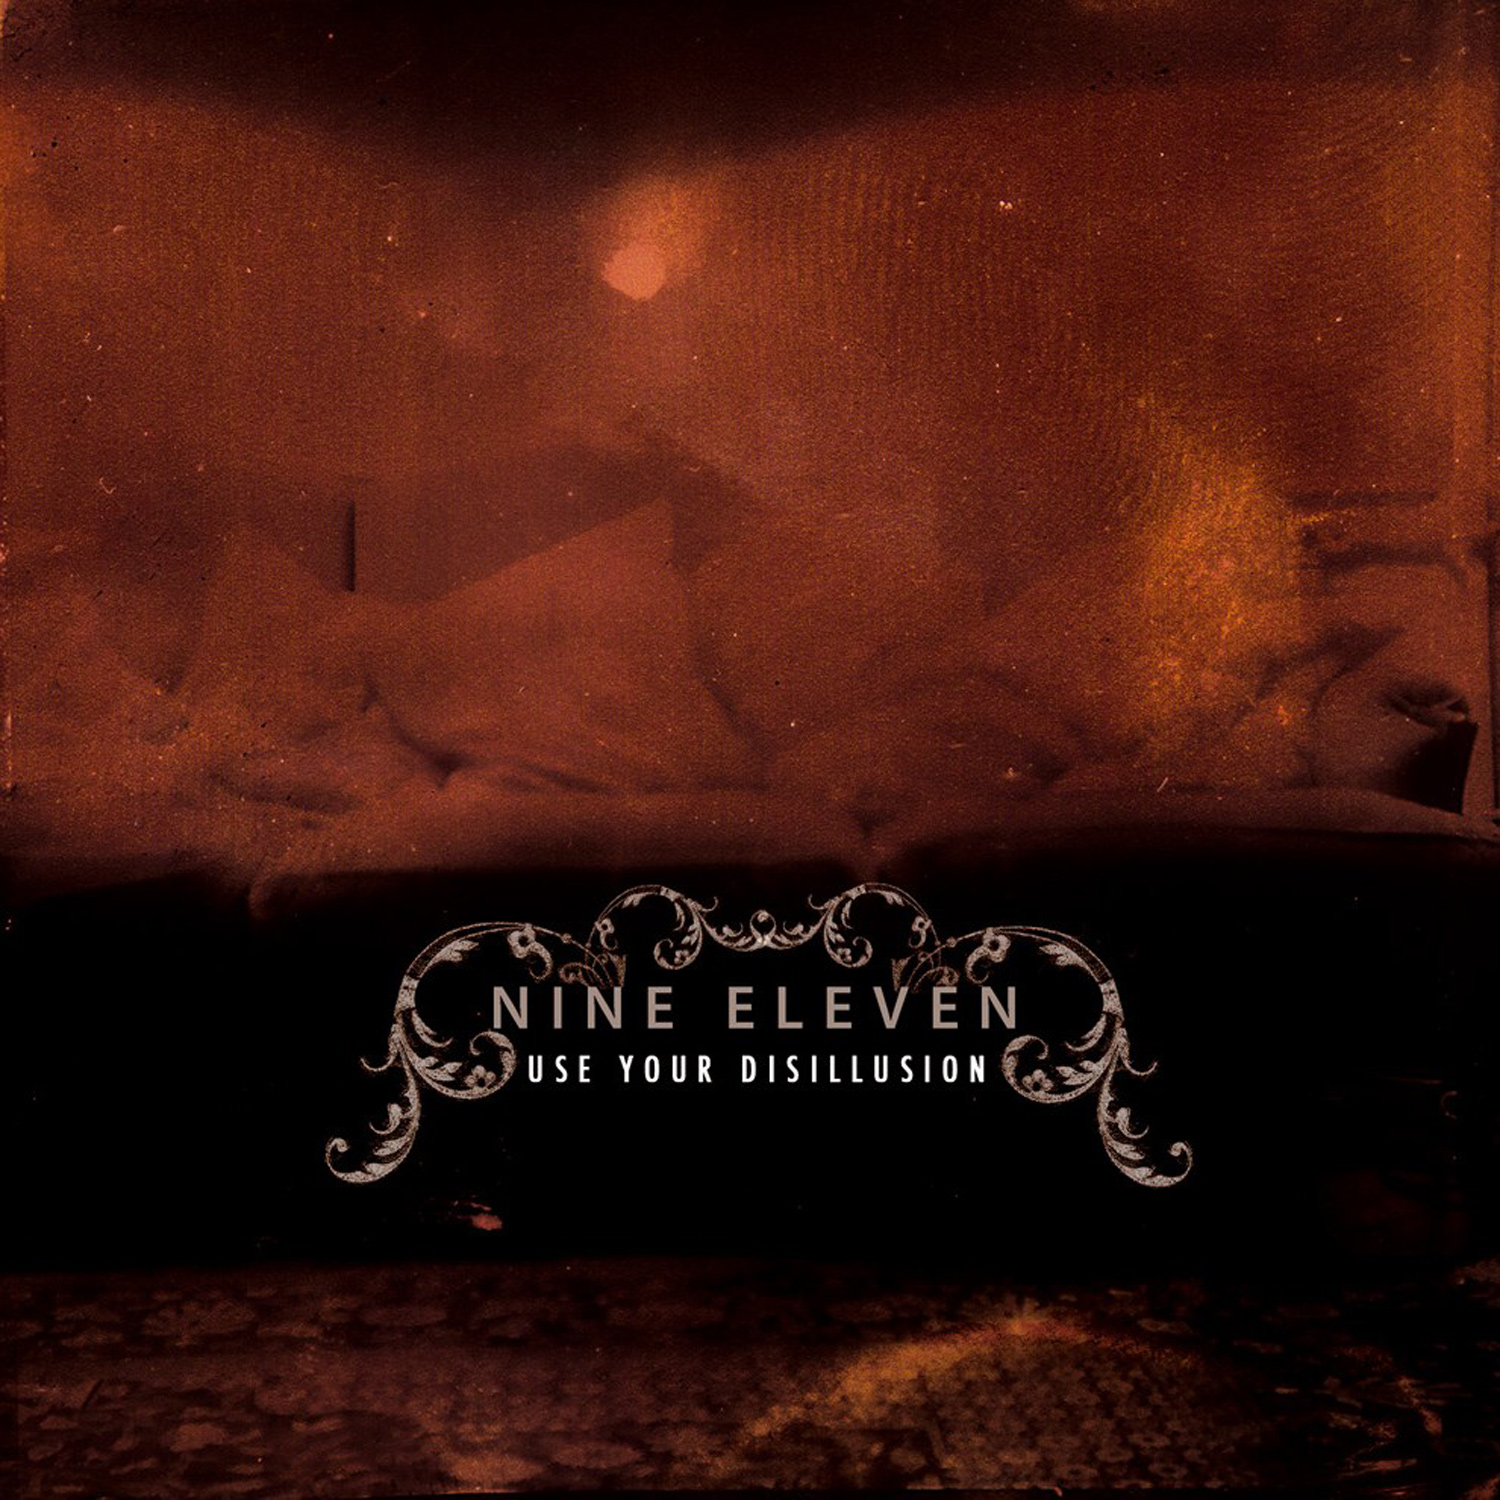 Nine Eleven - use your disillusion